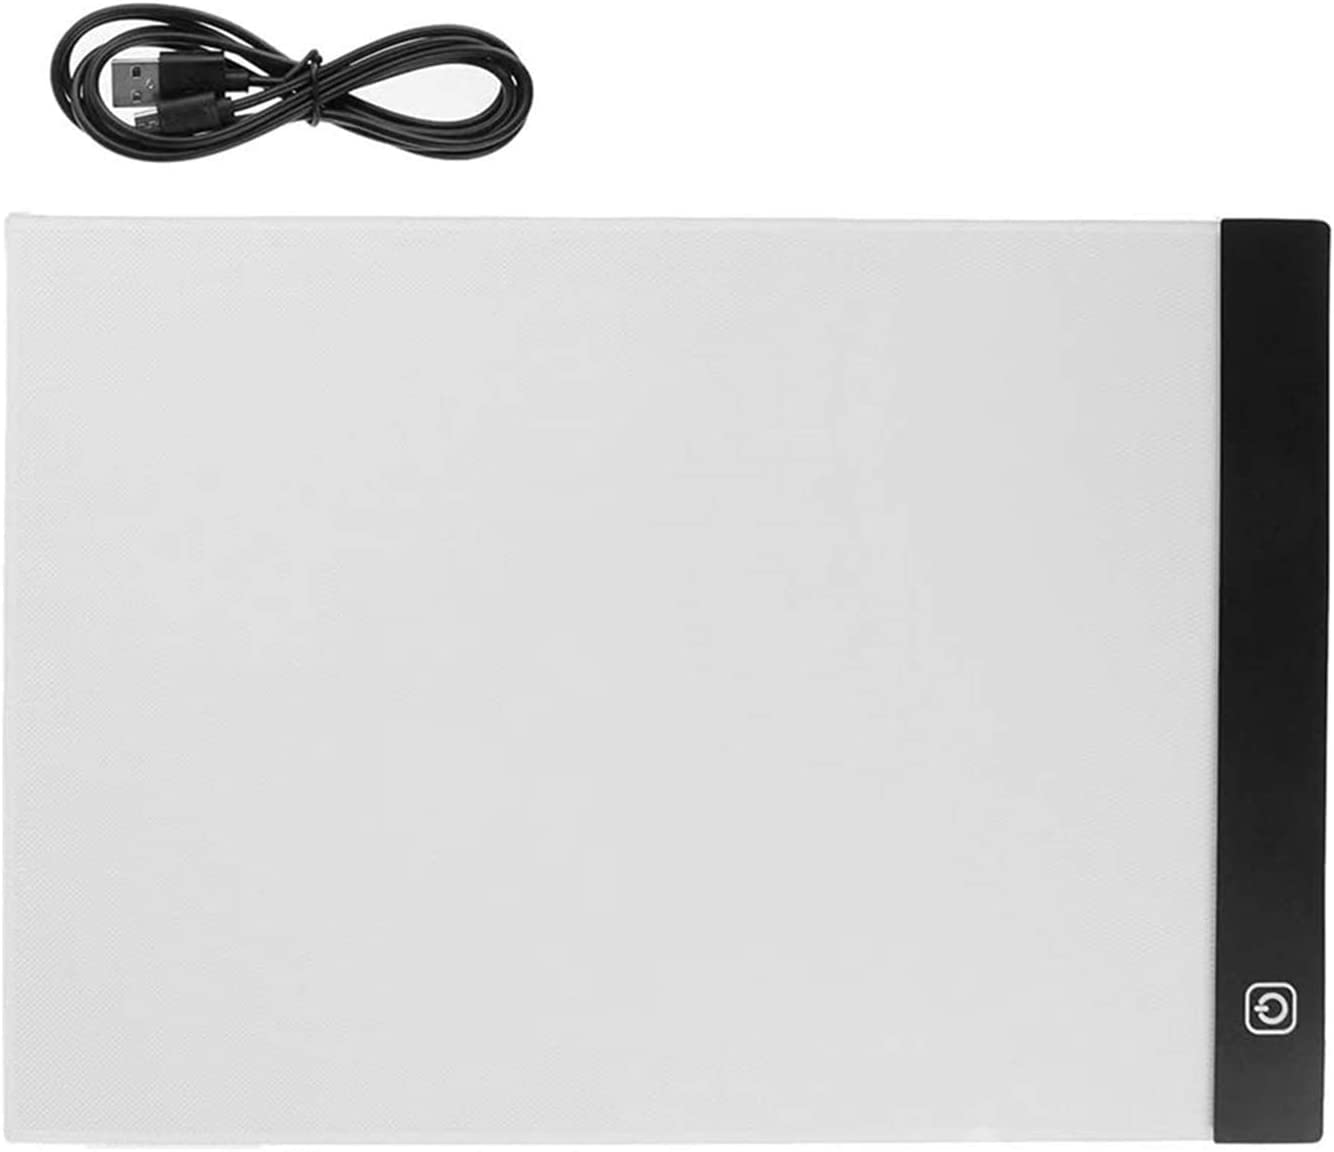 Eshylala A4 LED Light Box Tracing Dimmable Special sale item USB Art Be super welcome Stencil Board